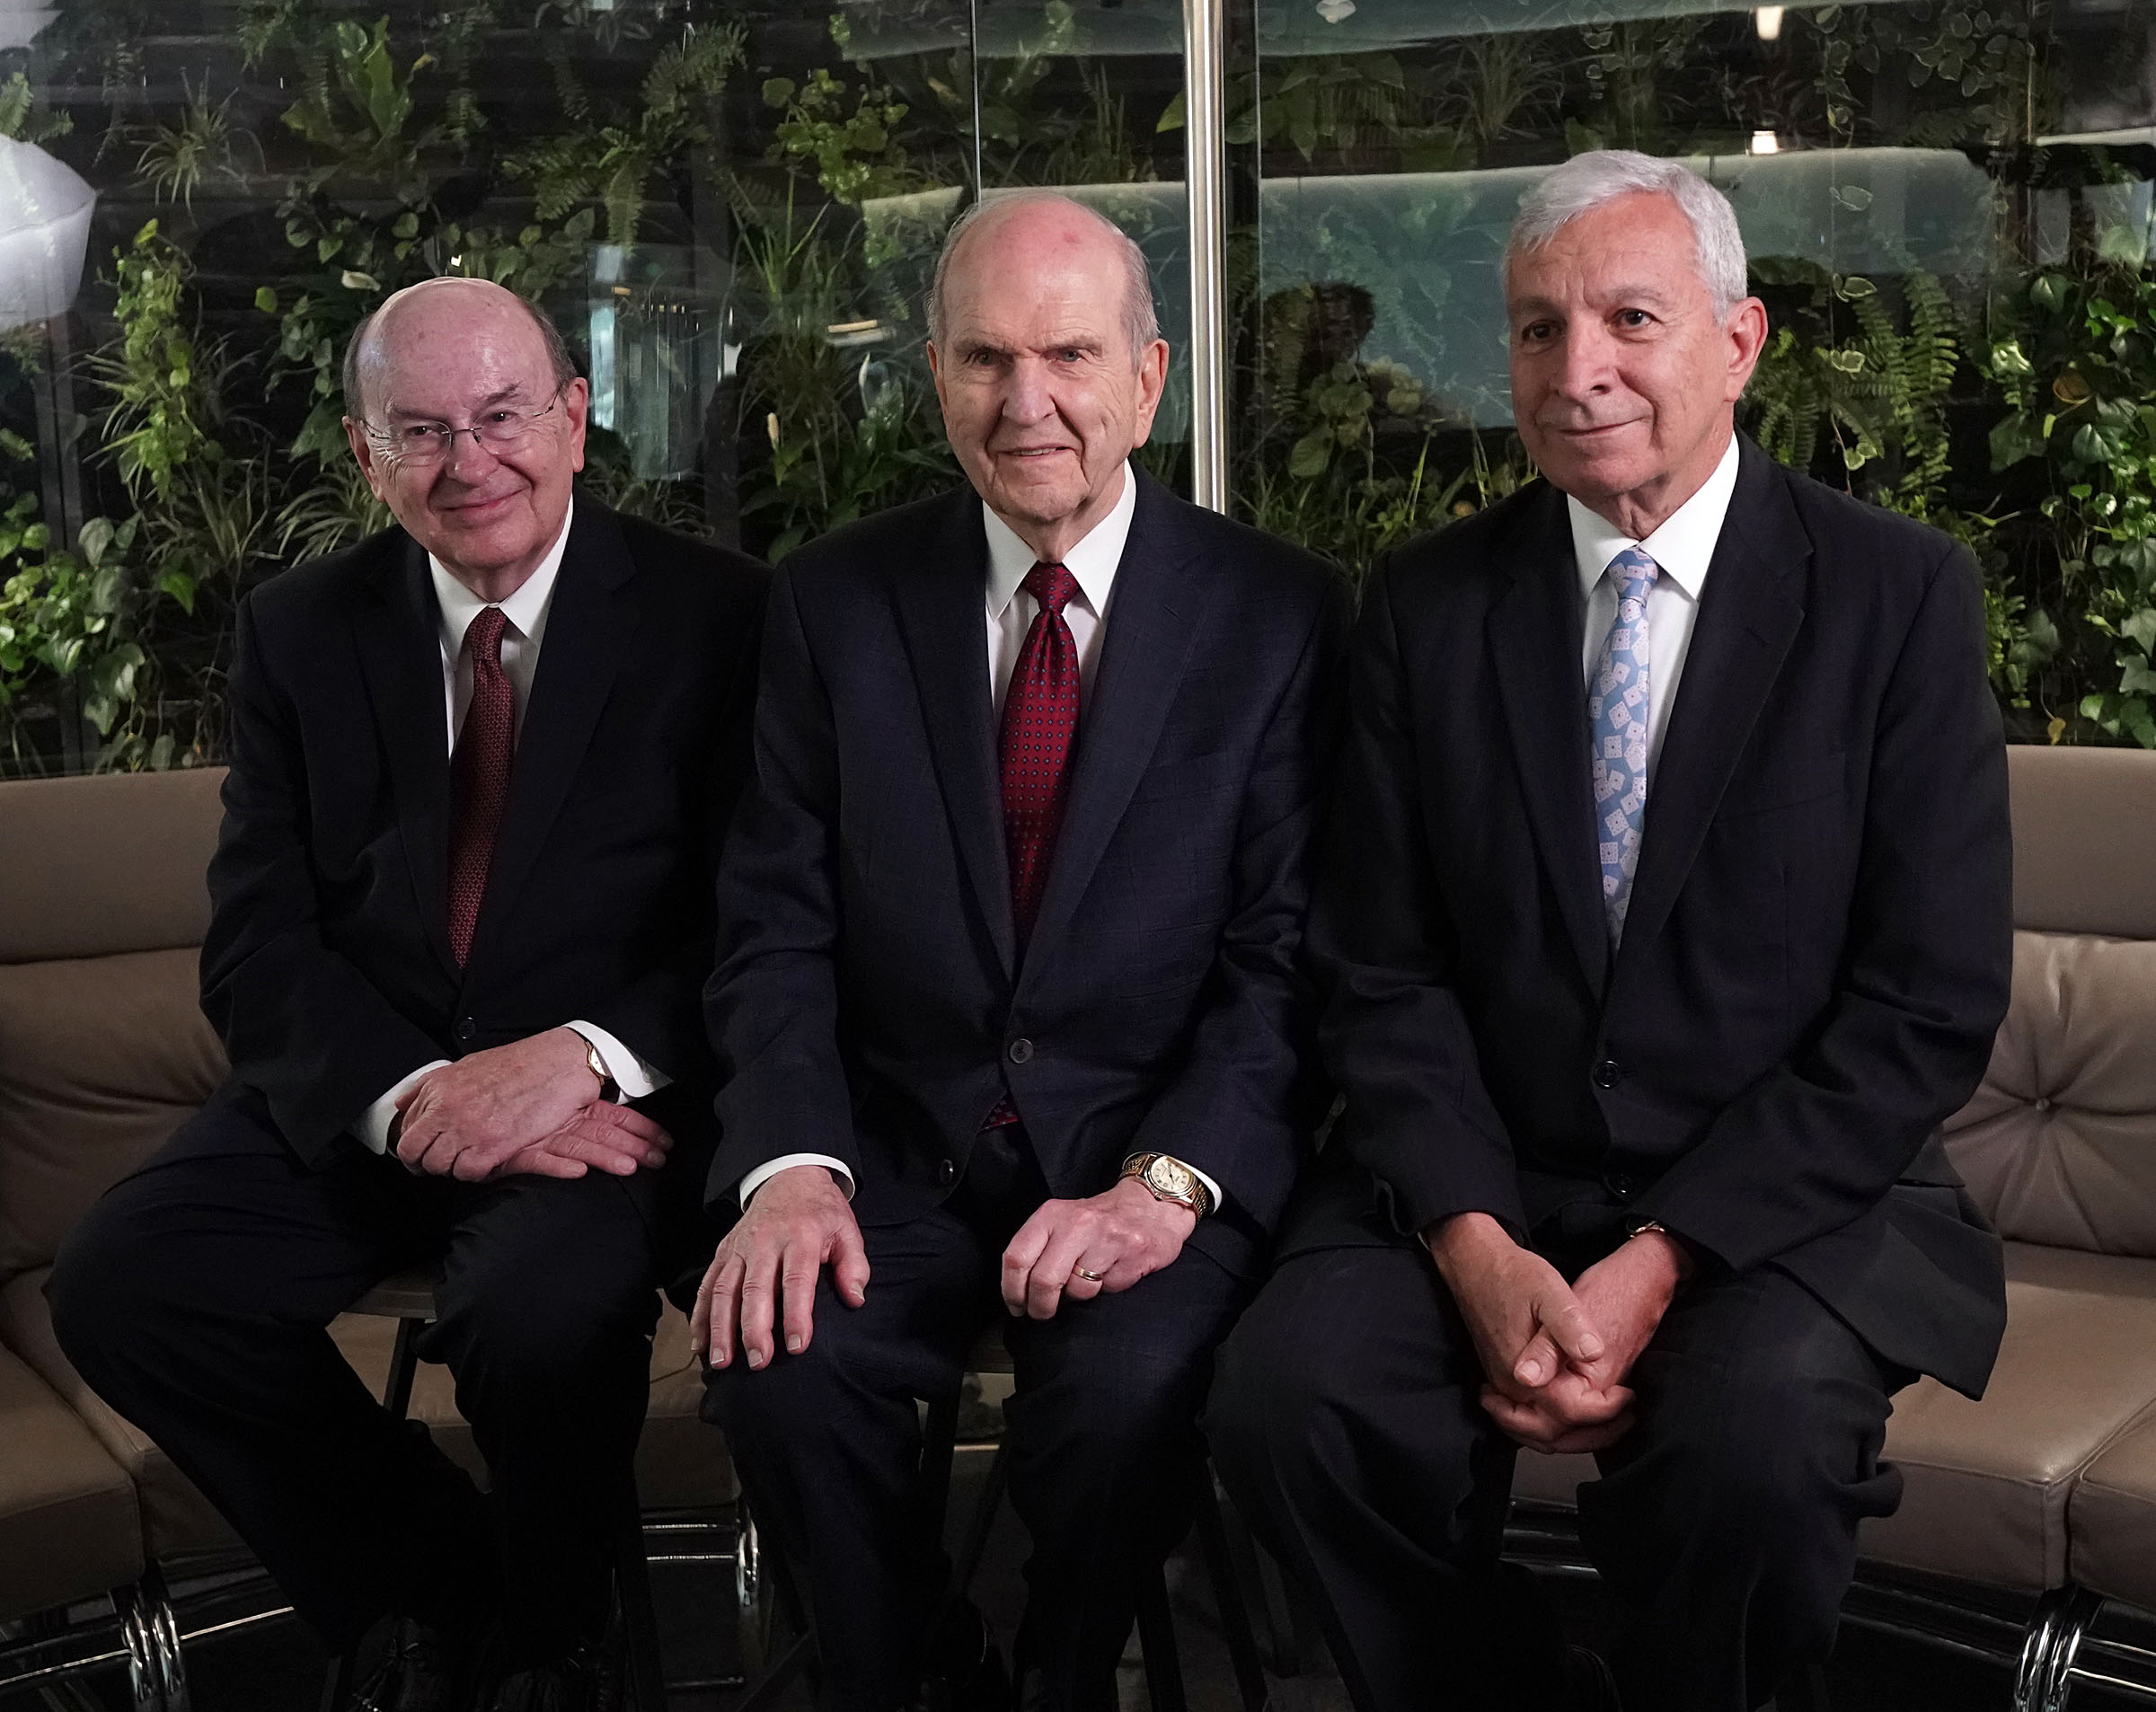 President Russell M. Nelson of The Church of Jesus Christ of Latter-day Saints, center, during an interview in Bogota, Colombia, on Monday, Aug. 26, 2019. At left is Elder Quentin L. Cook of the Quorum of the Twelve Apostles. At right is Elder Enrique R. Falabella, General Authority Seventy. They previously met with President Ivan Duque of Colombia.